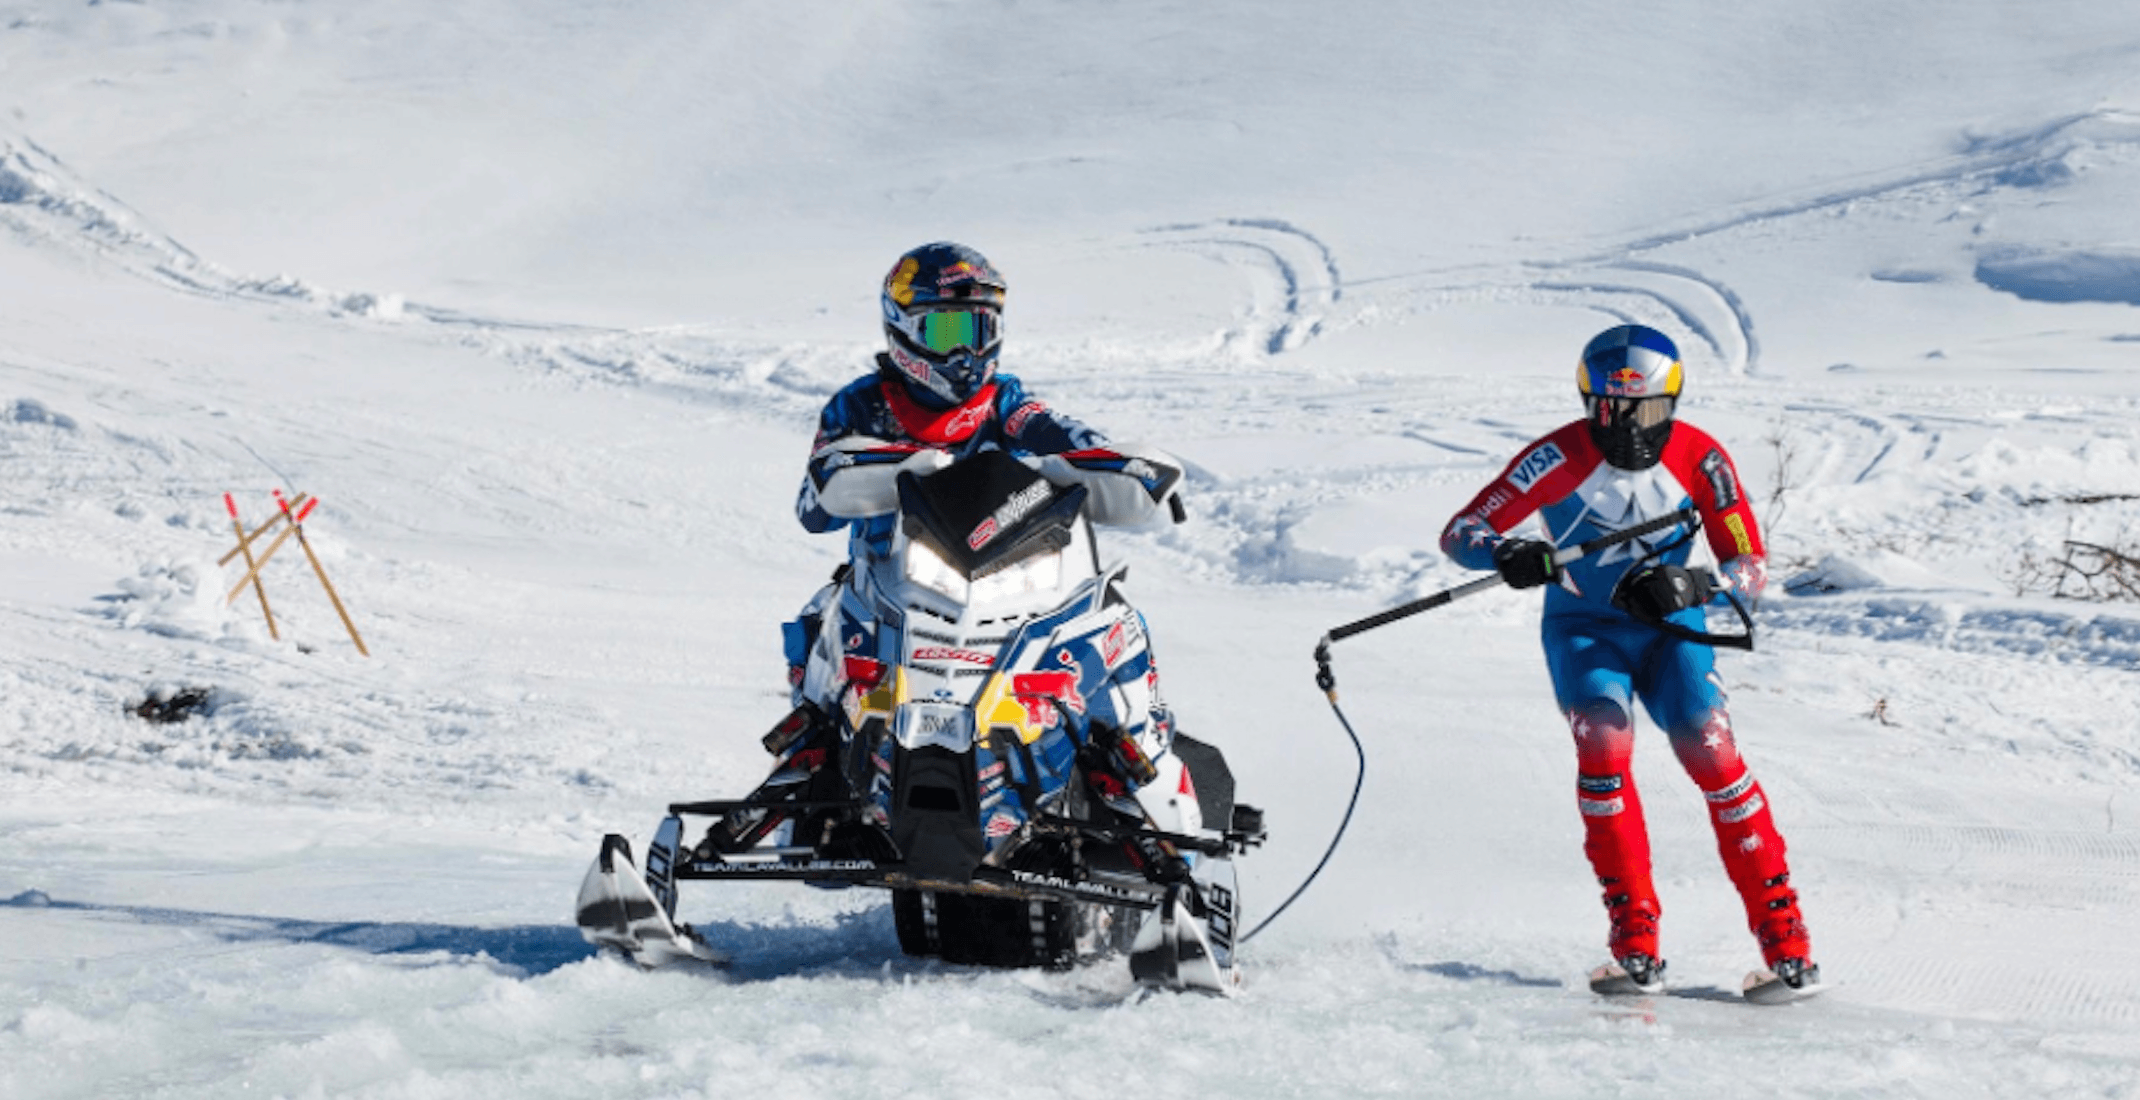 Red Bull is hosting an electrifying hillcross snowmobiling competition in Quebec